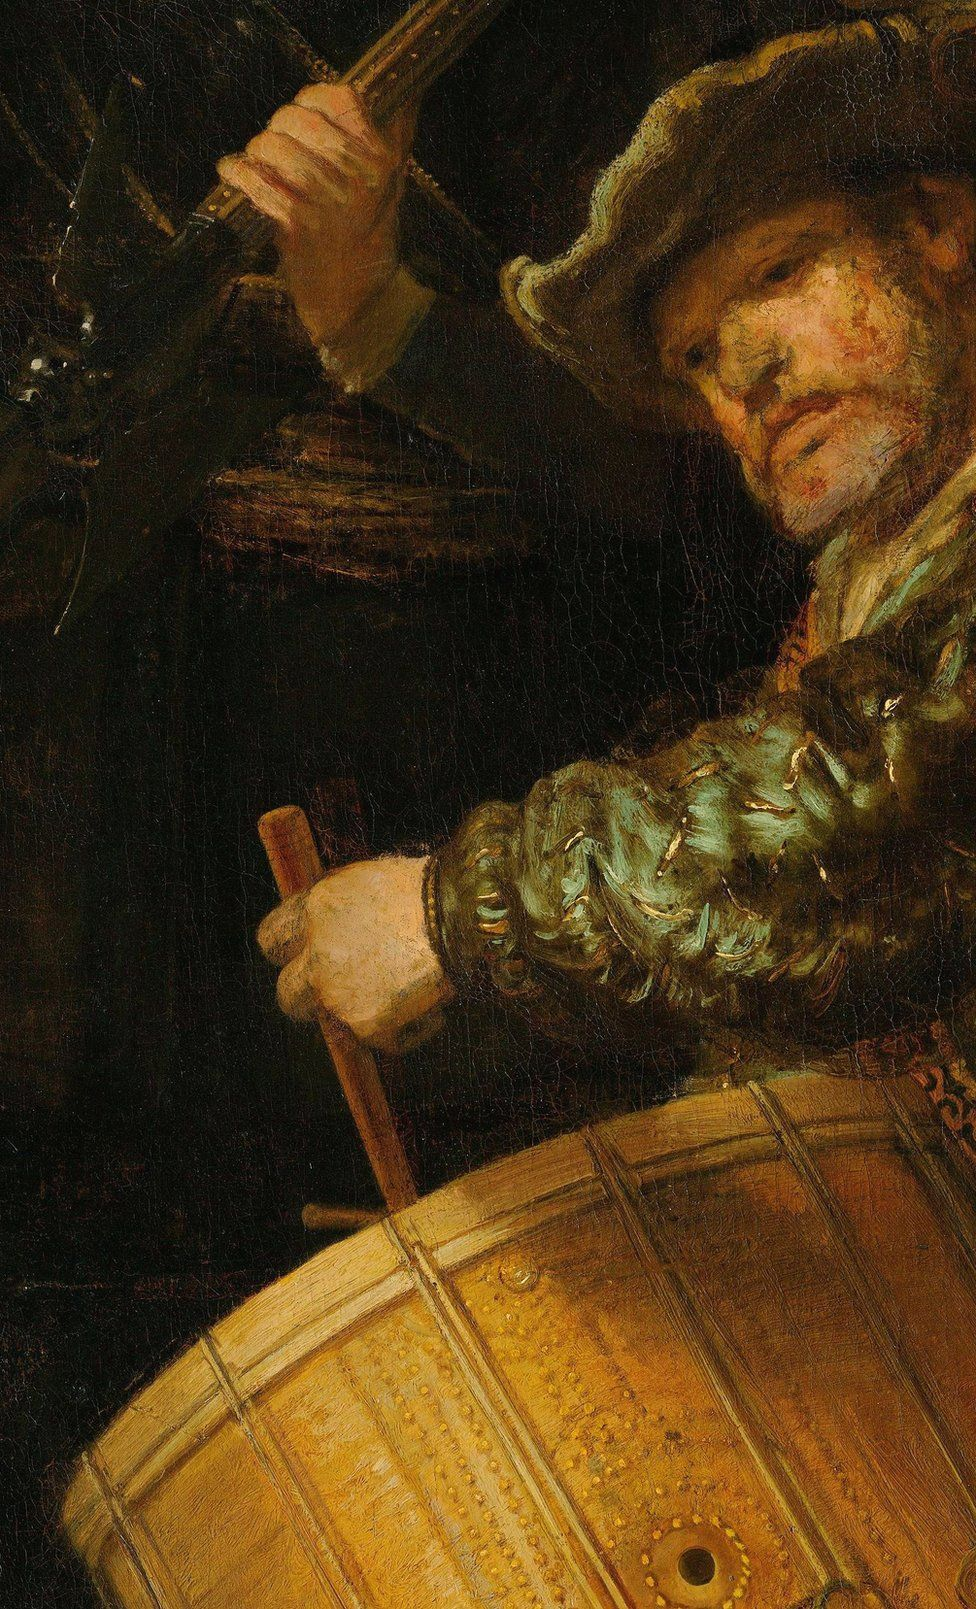 Detail from The Night Watch